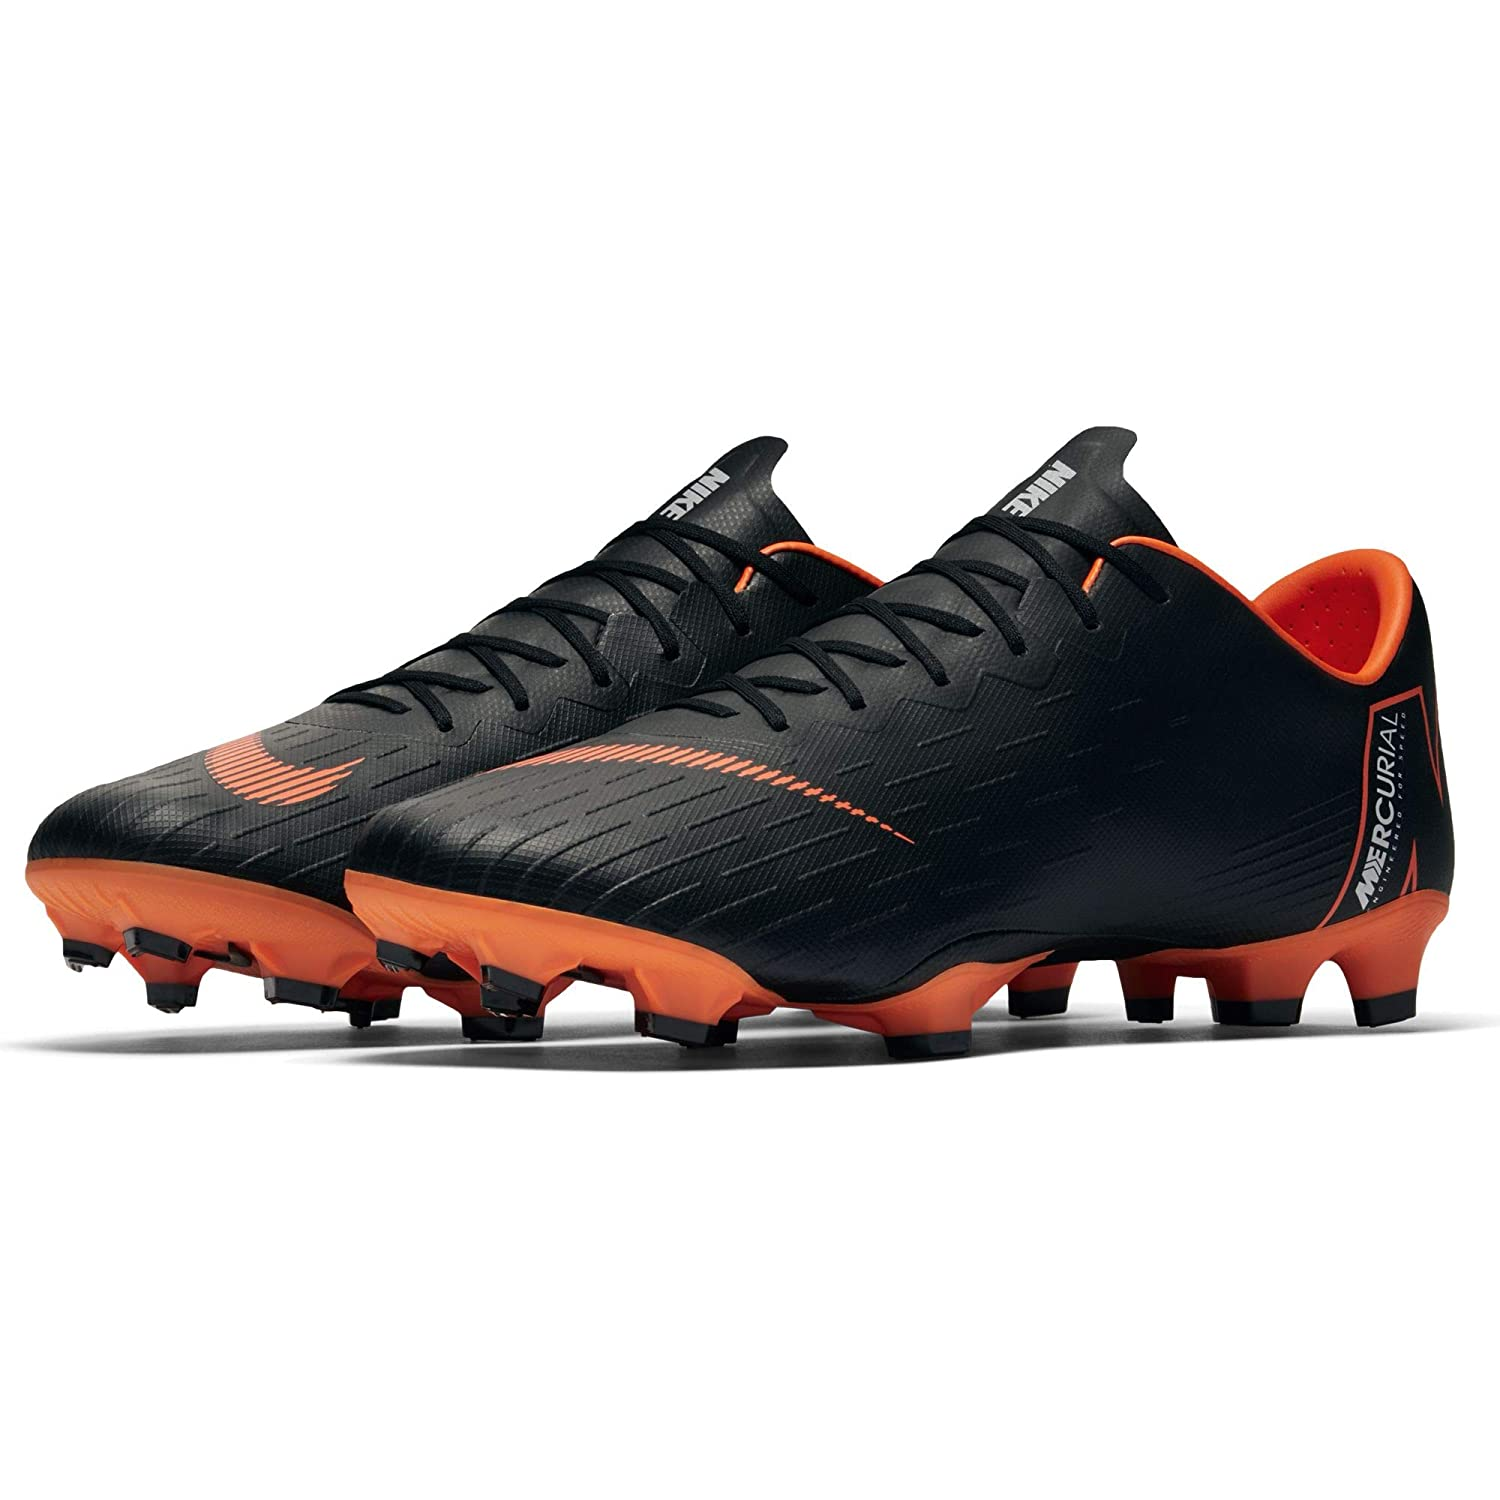 bd1a8ee8fd5b Amazon.com: Nike Unisex Vapor 12 Pro Fg Soccer Cleats: Shoes